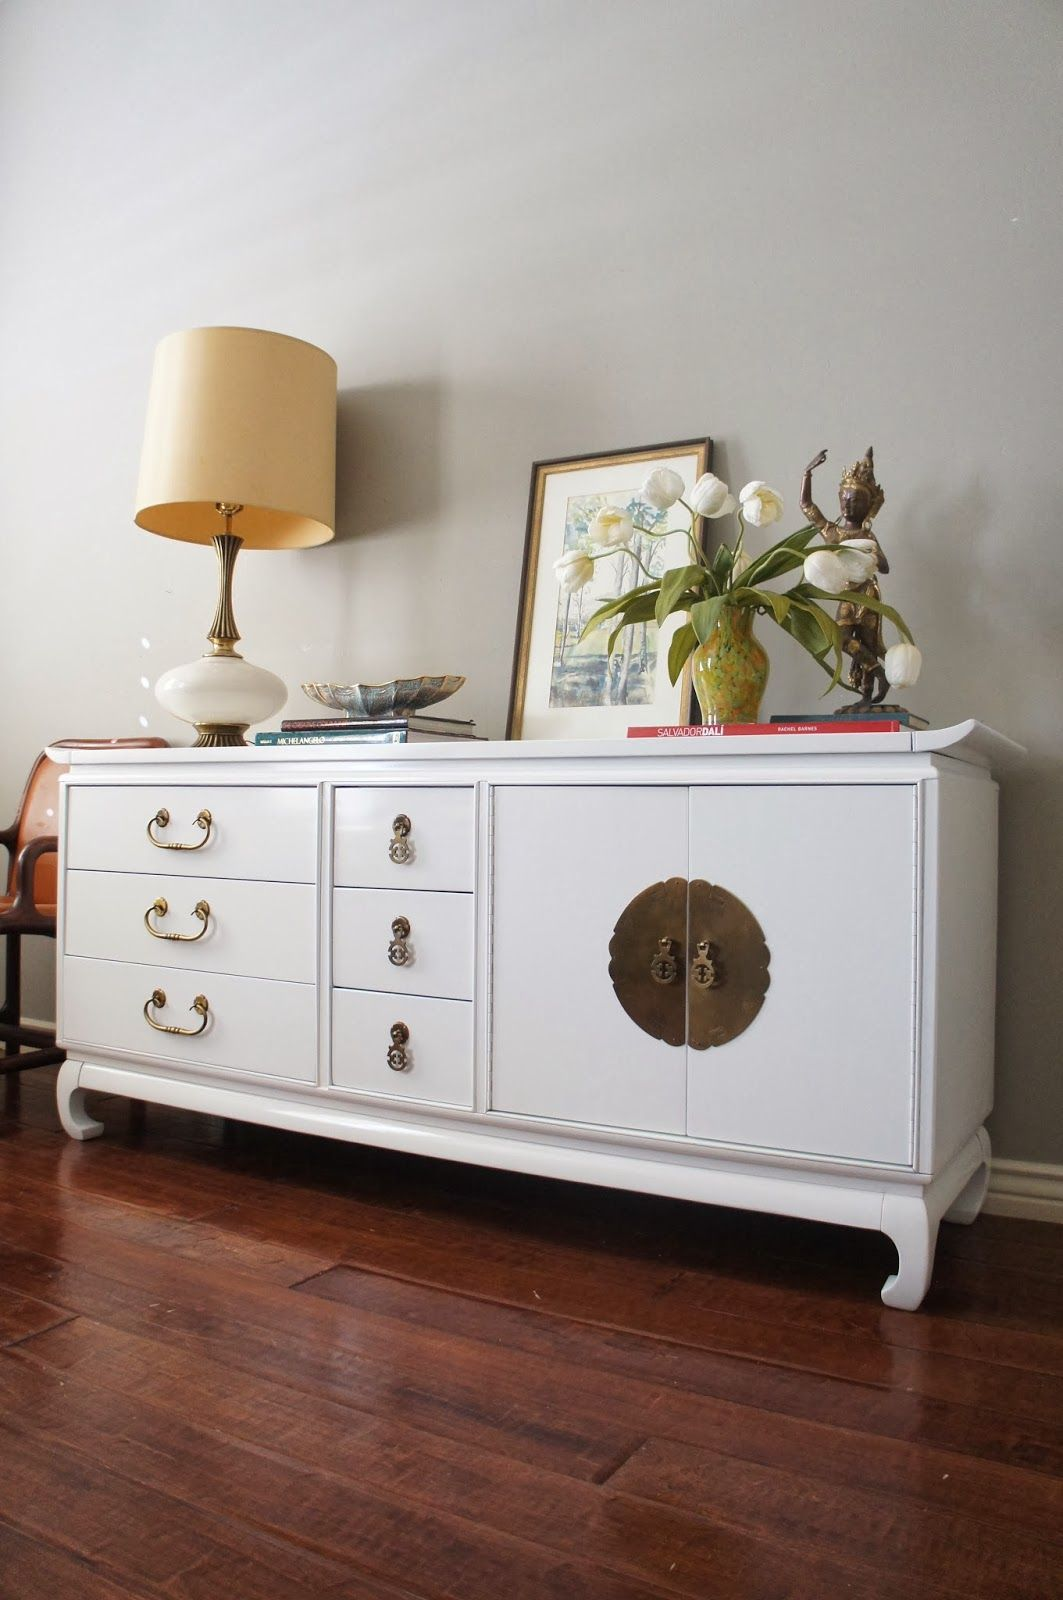 Sold Hollywood Regency Mid Century Modern Dresser By